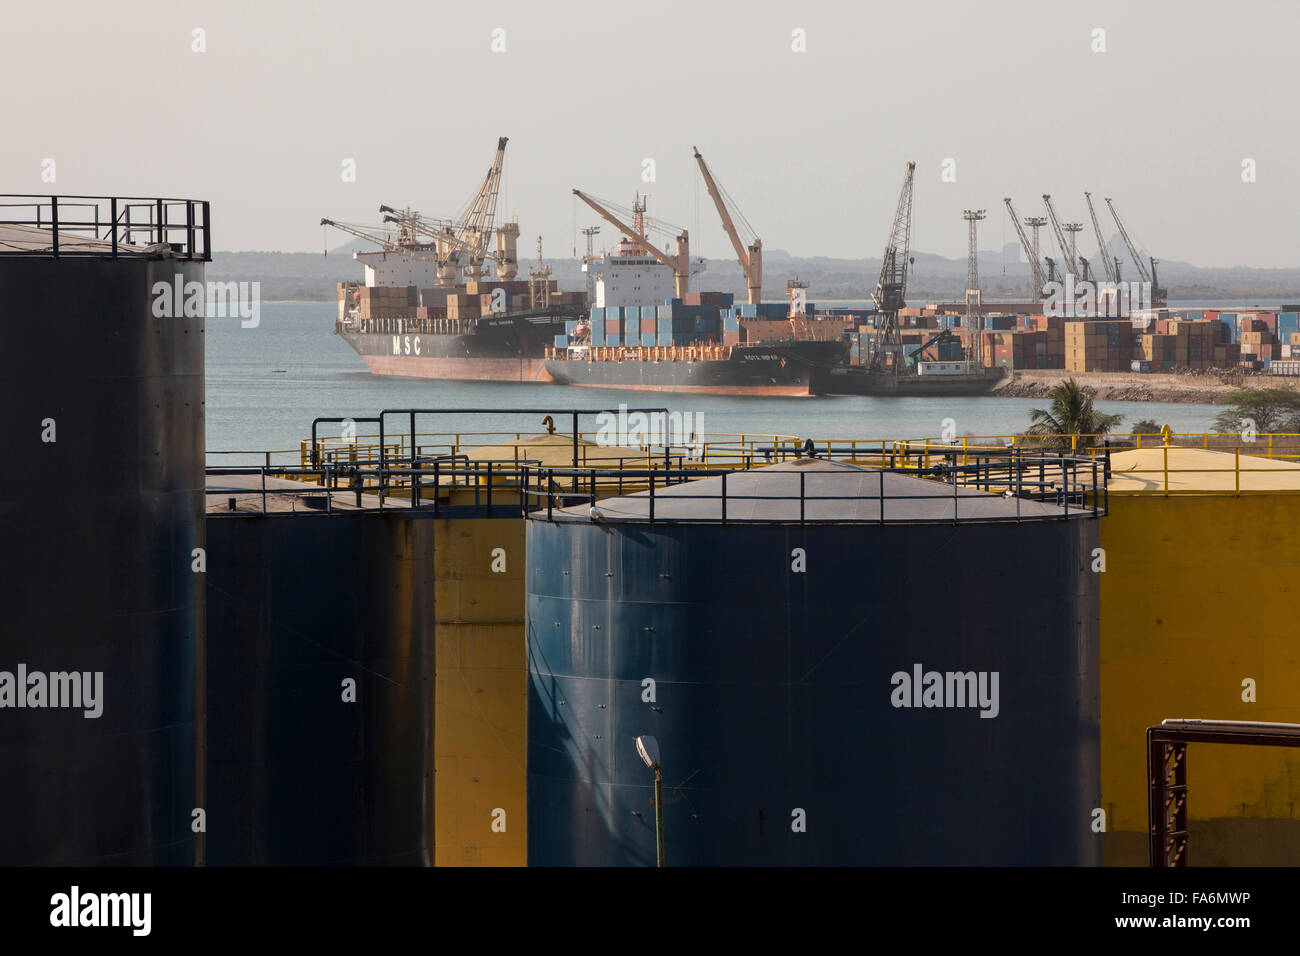 Ships dock at the port of Nacala in Northeastern Mozambique. - Stock Image